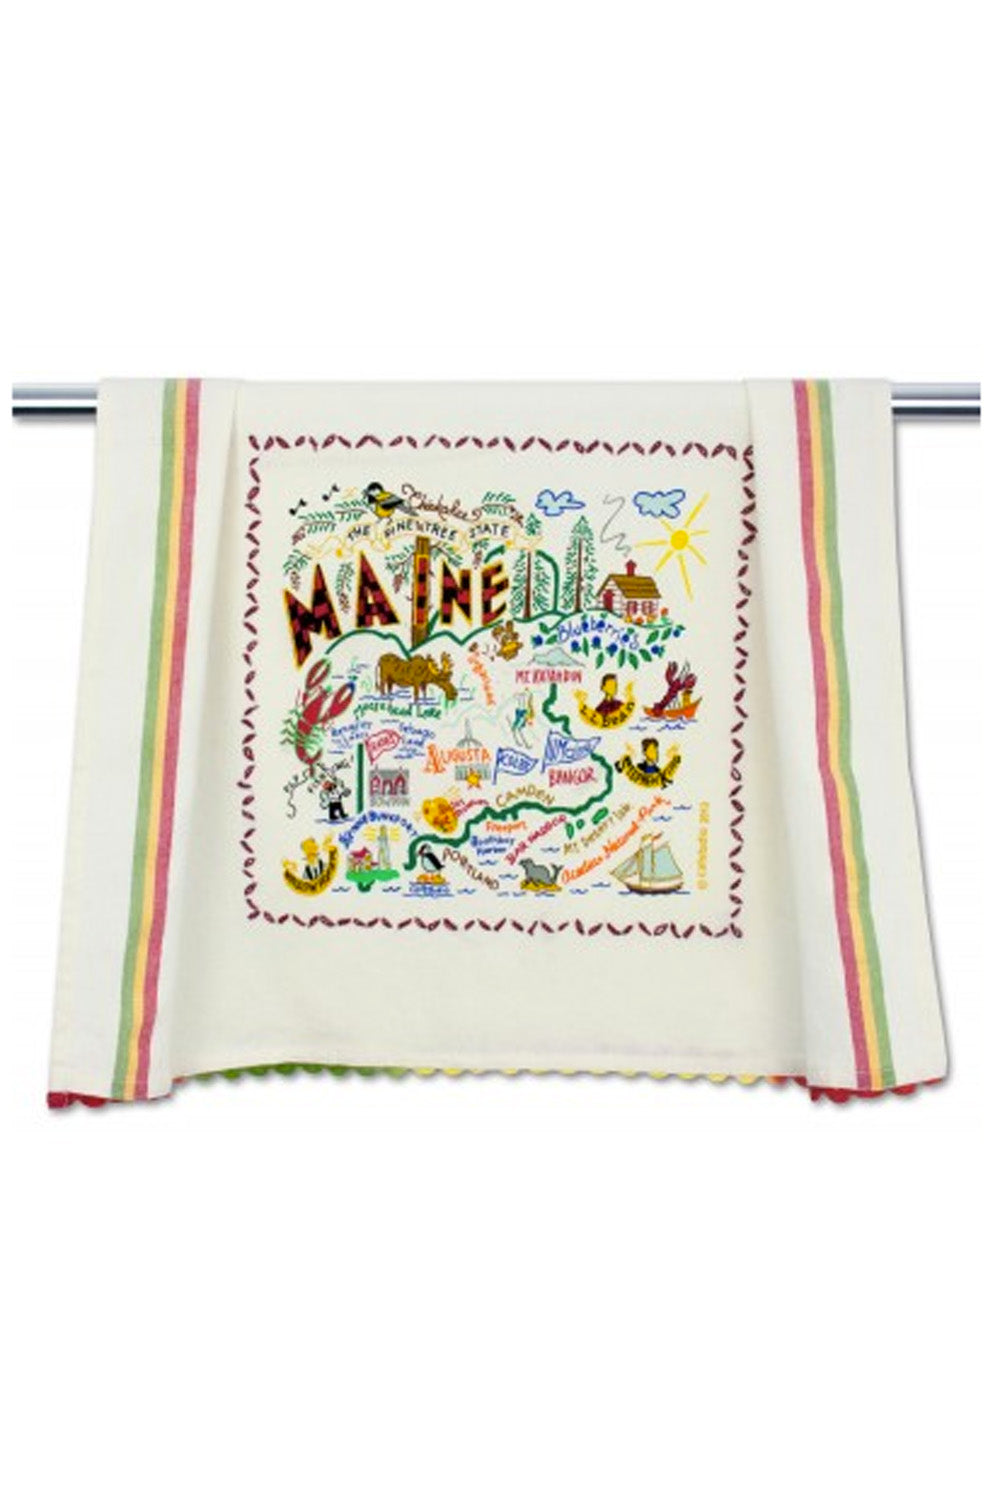 Embroidered Dish Towel  - Maine